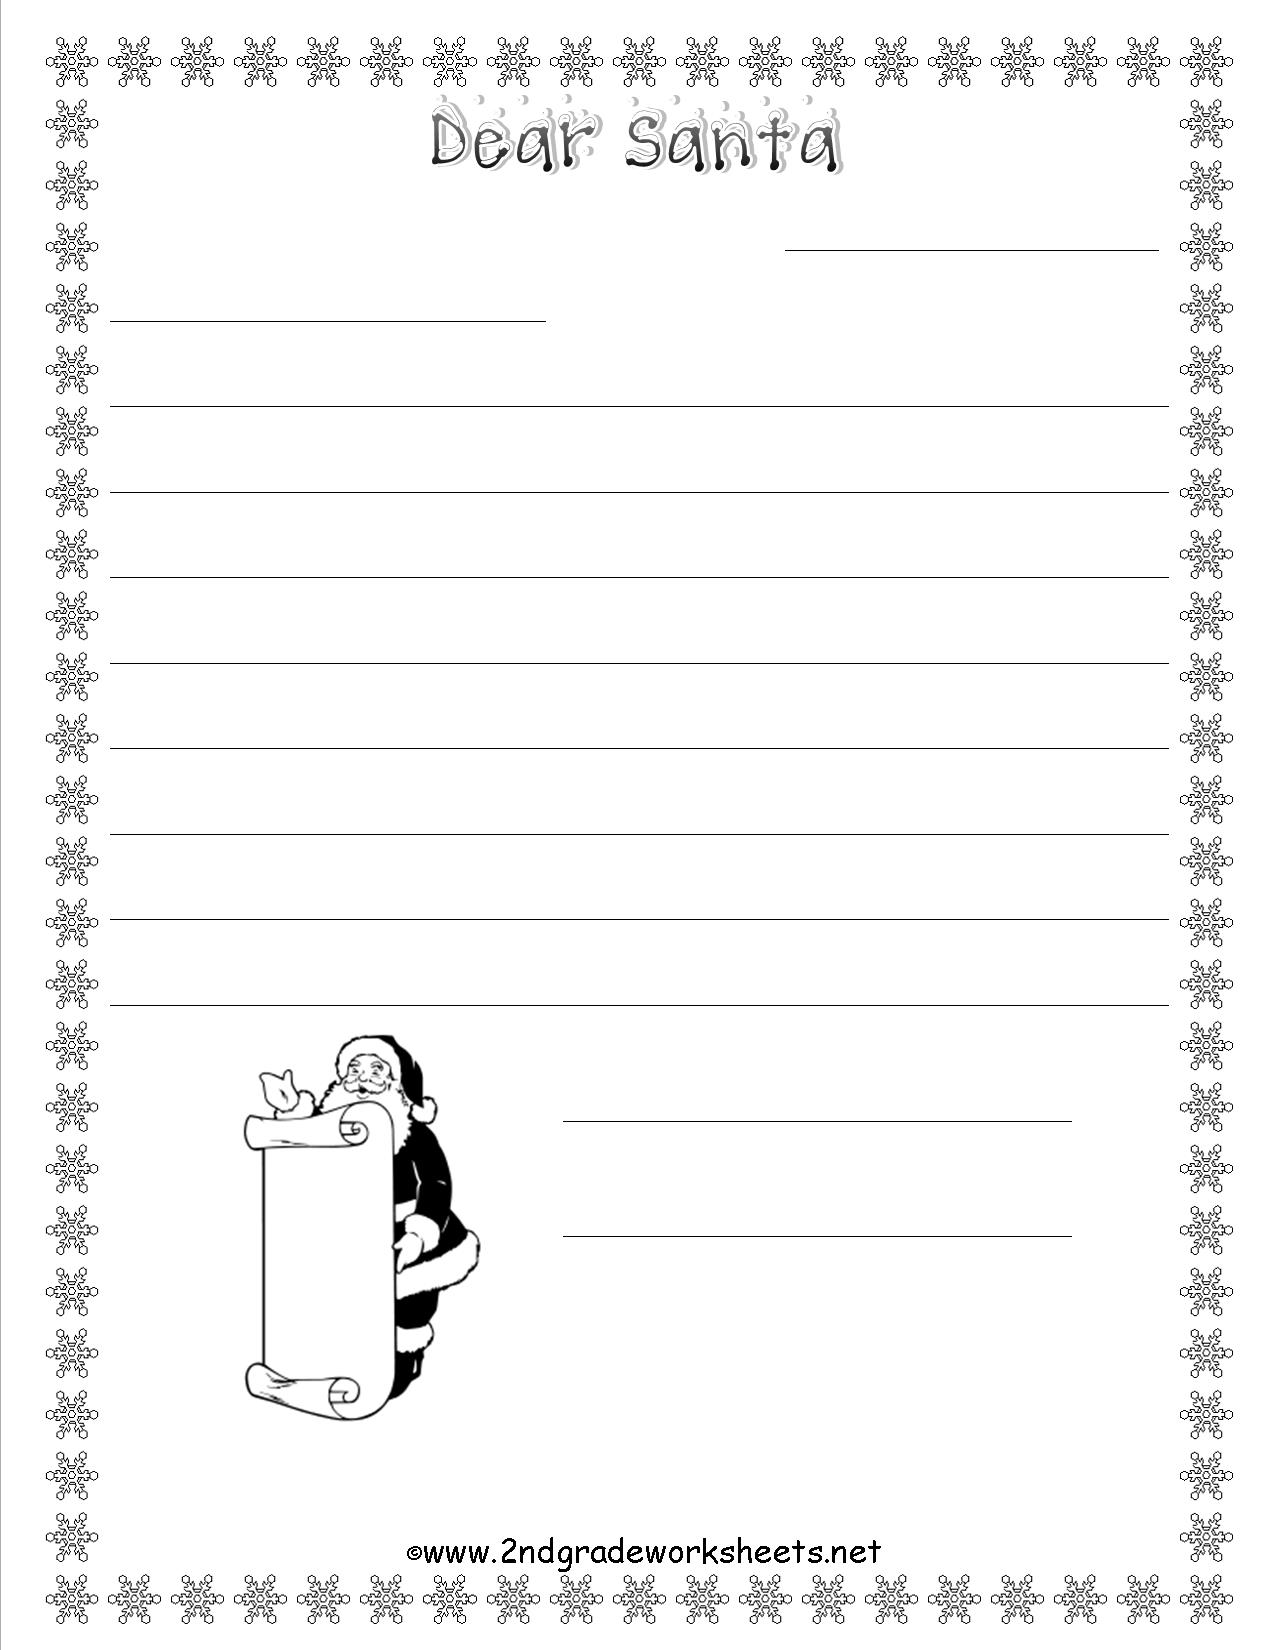 Dear Santa Letter Coloring Page With Christmas Worksheets And Printouts